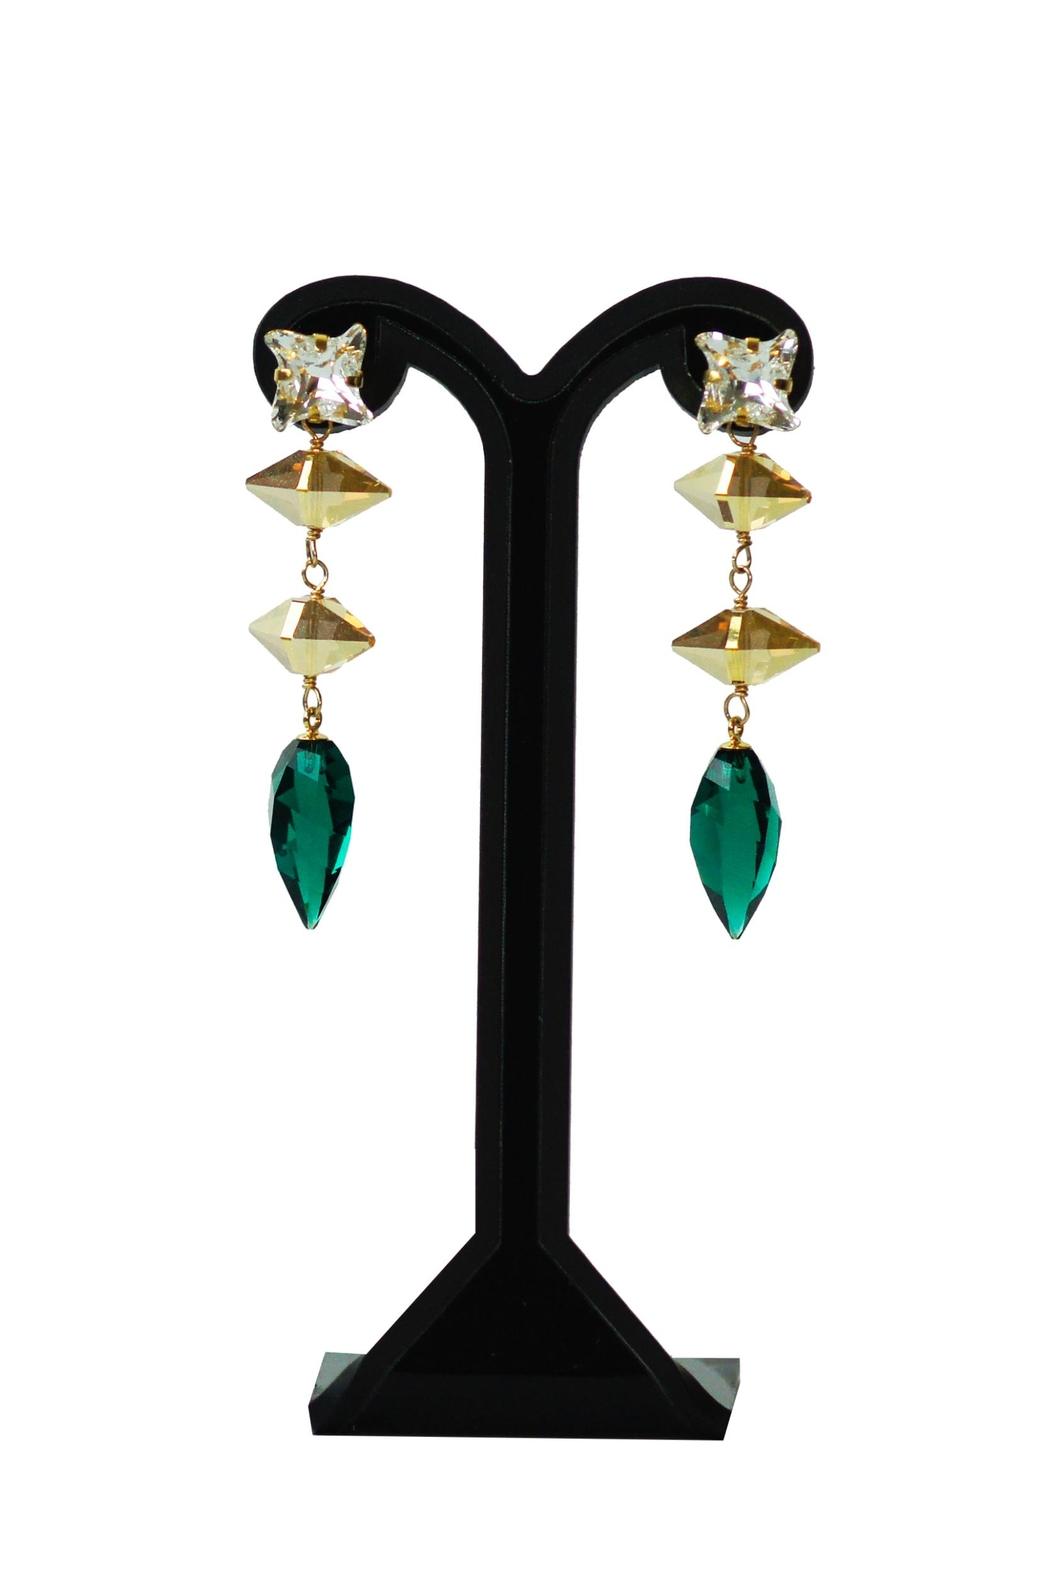 Dana Ponticiello Greenery Swarovski Earrings - Main Image